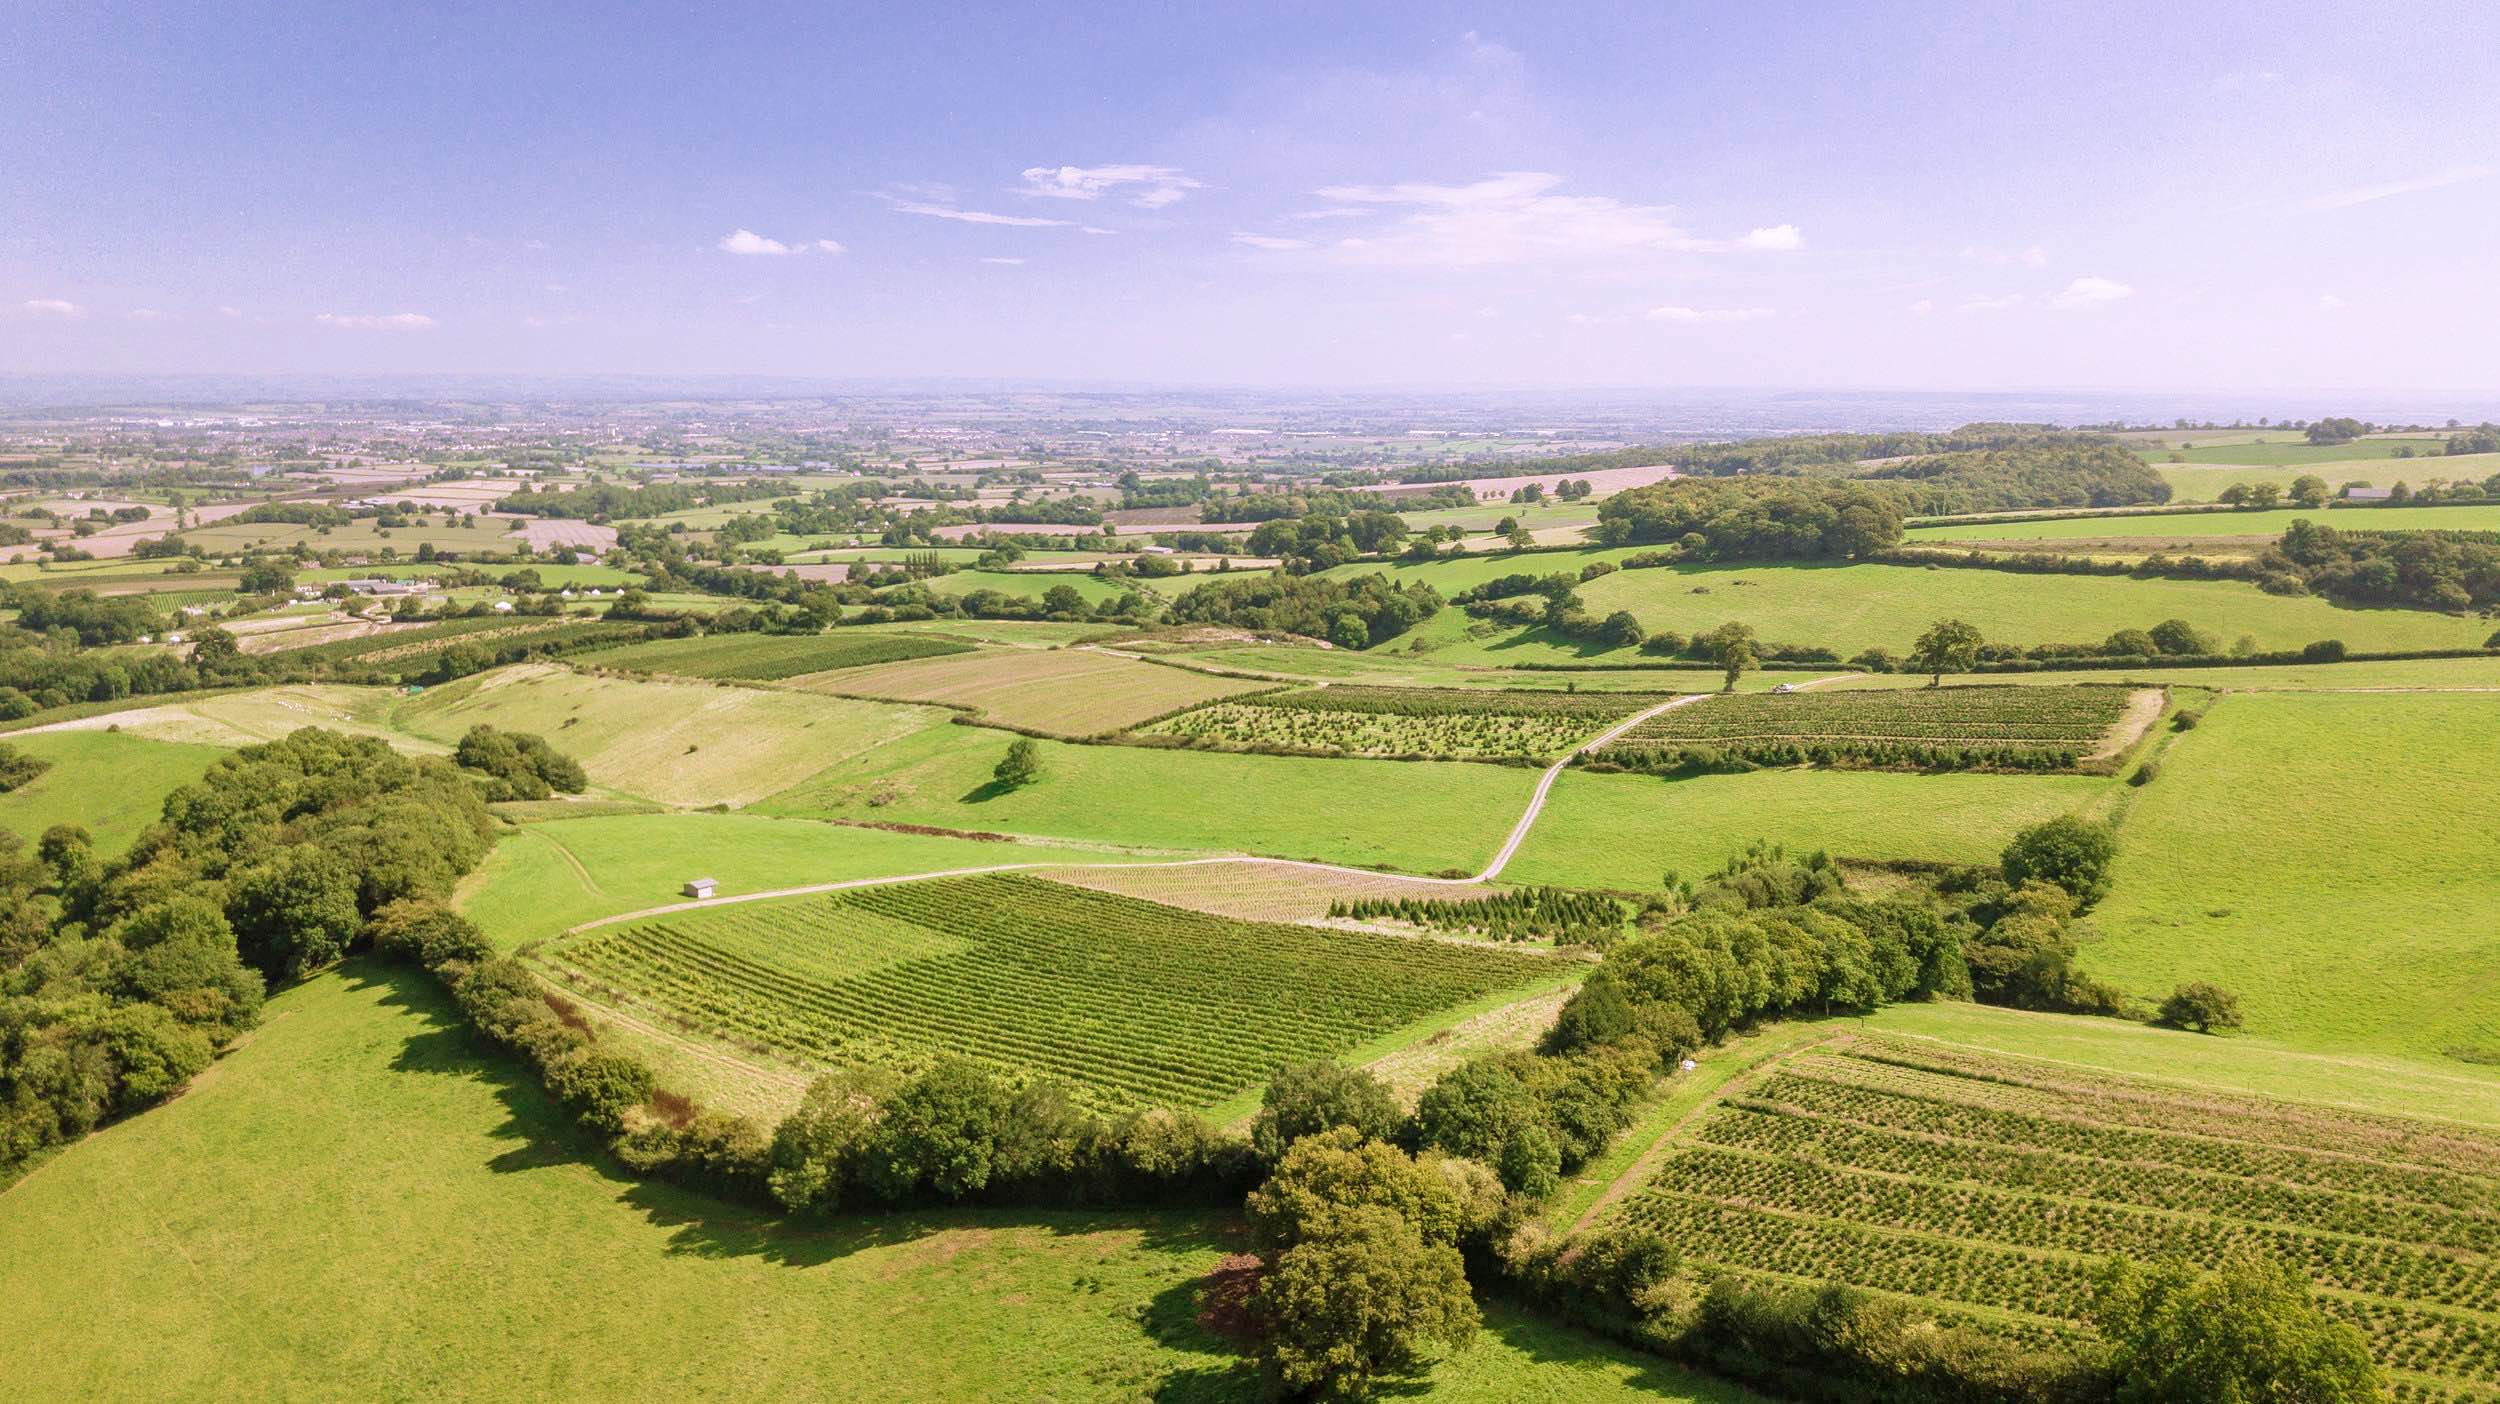 view from the top of the farm (1).jpg